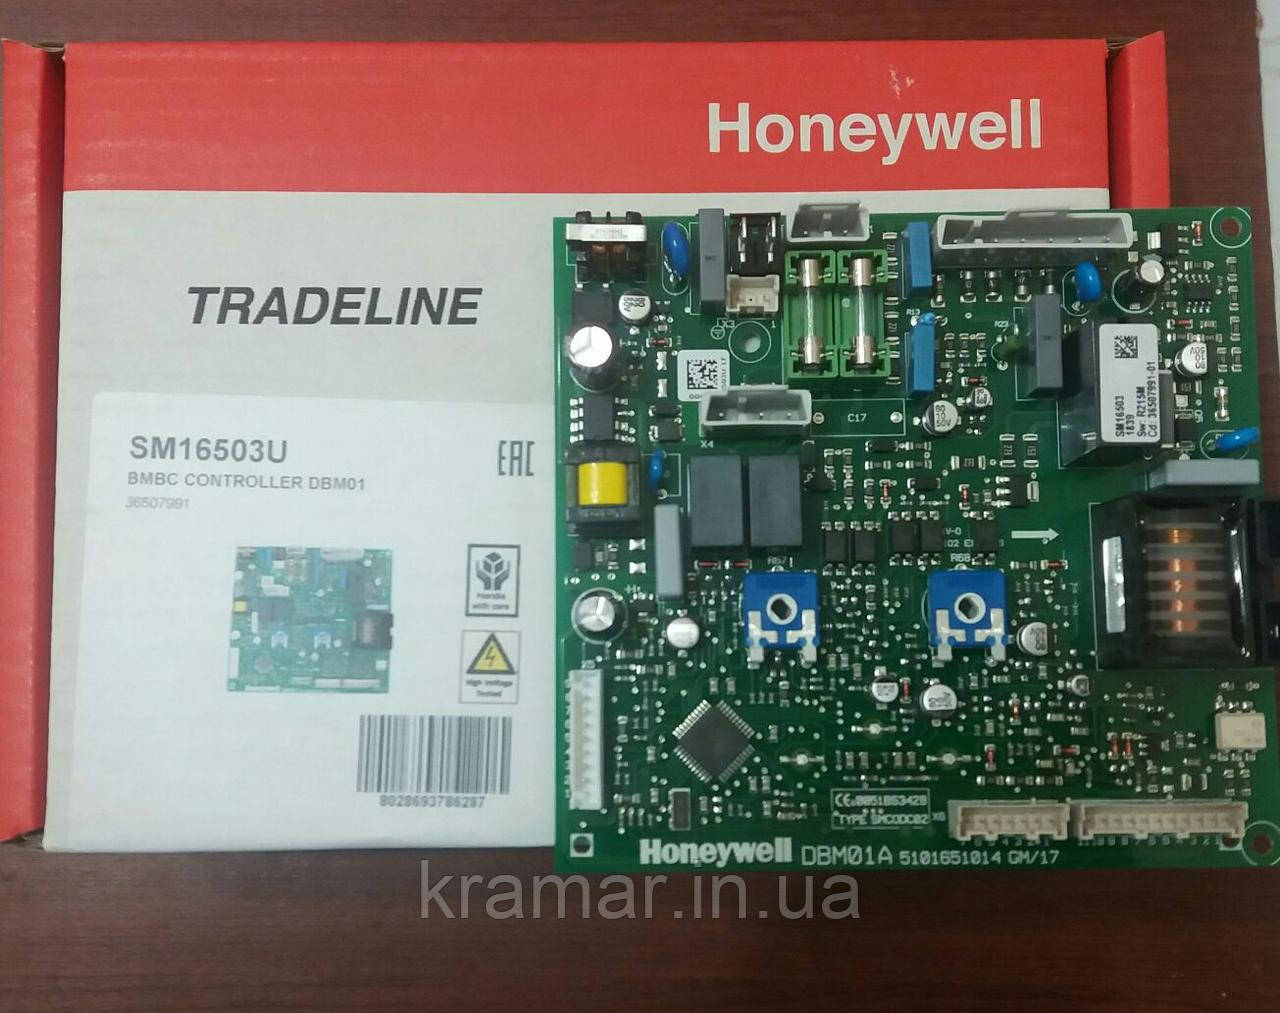 Плата управления Ferroli DomiProject Honeywell  (с ручками)